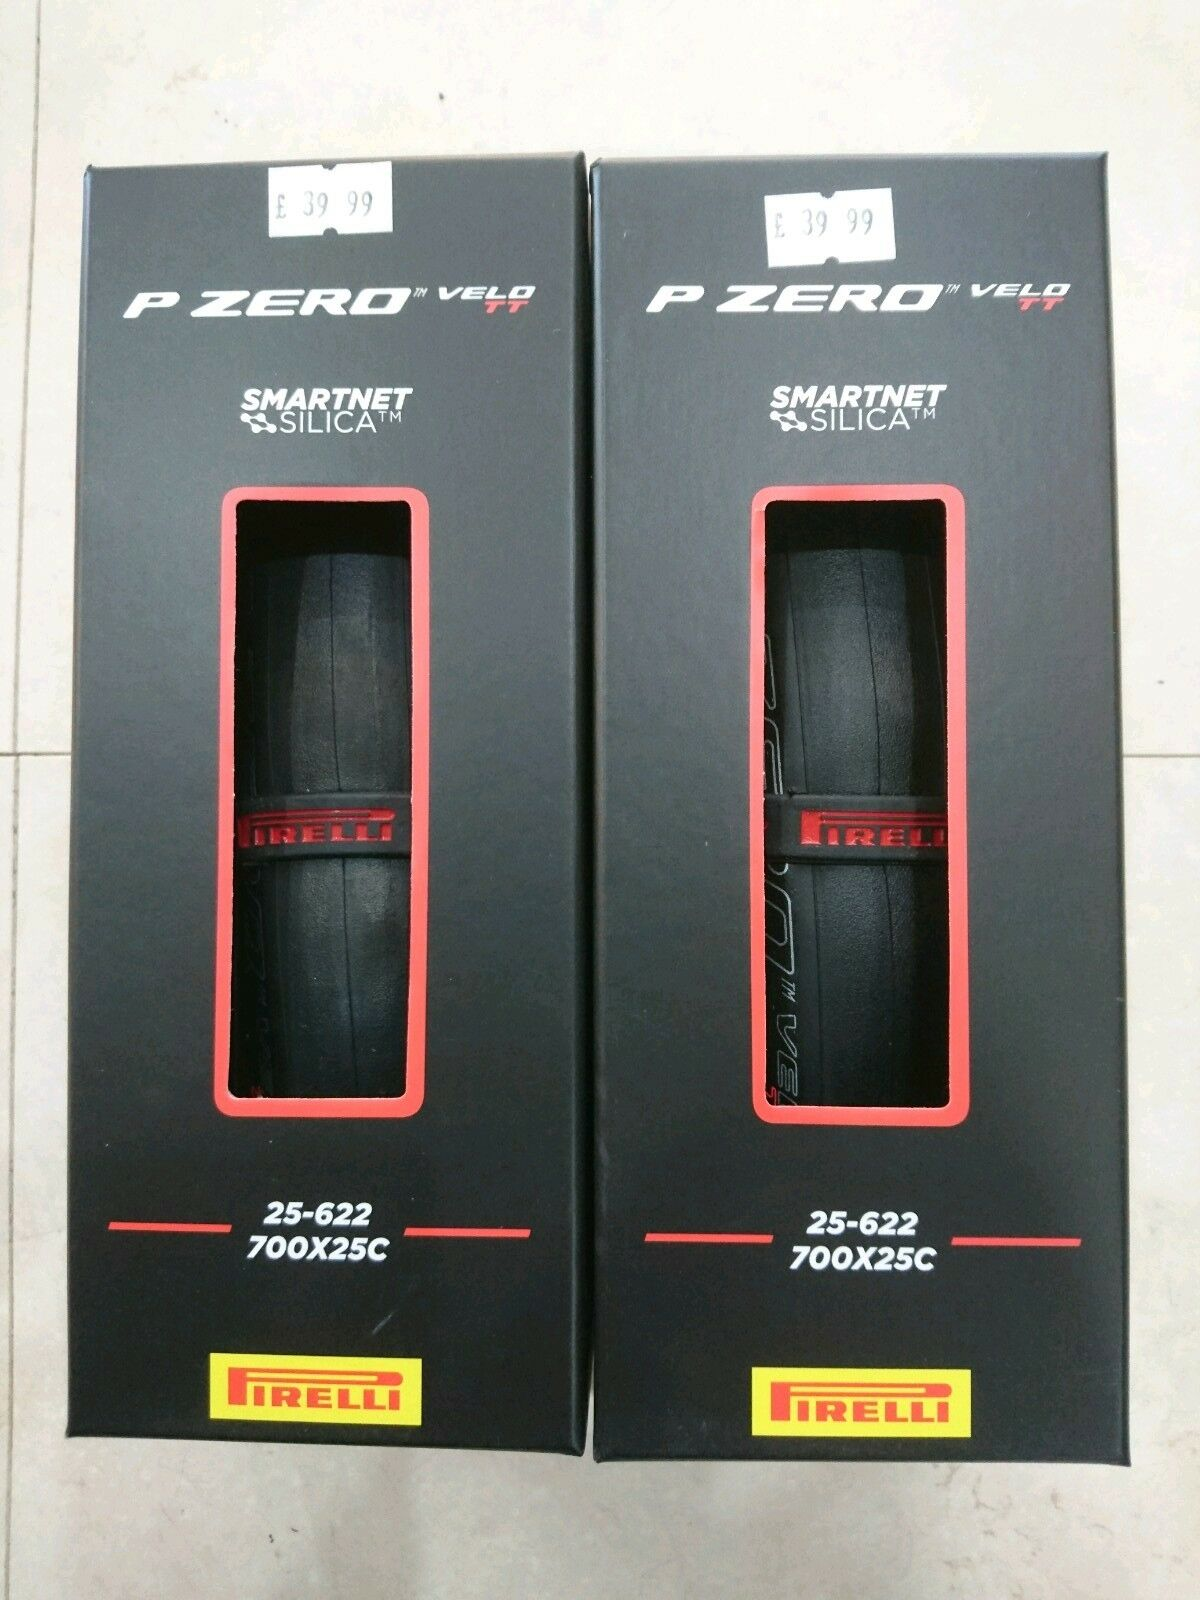 Pirelli P zero velo TT road racing bicycle tyres 700 X 25c PAIR 2 tyres NEW